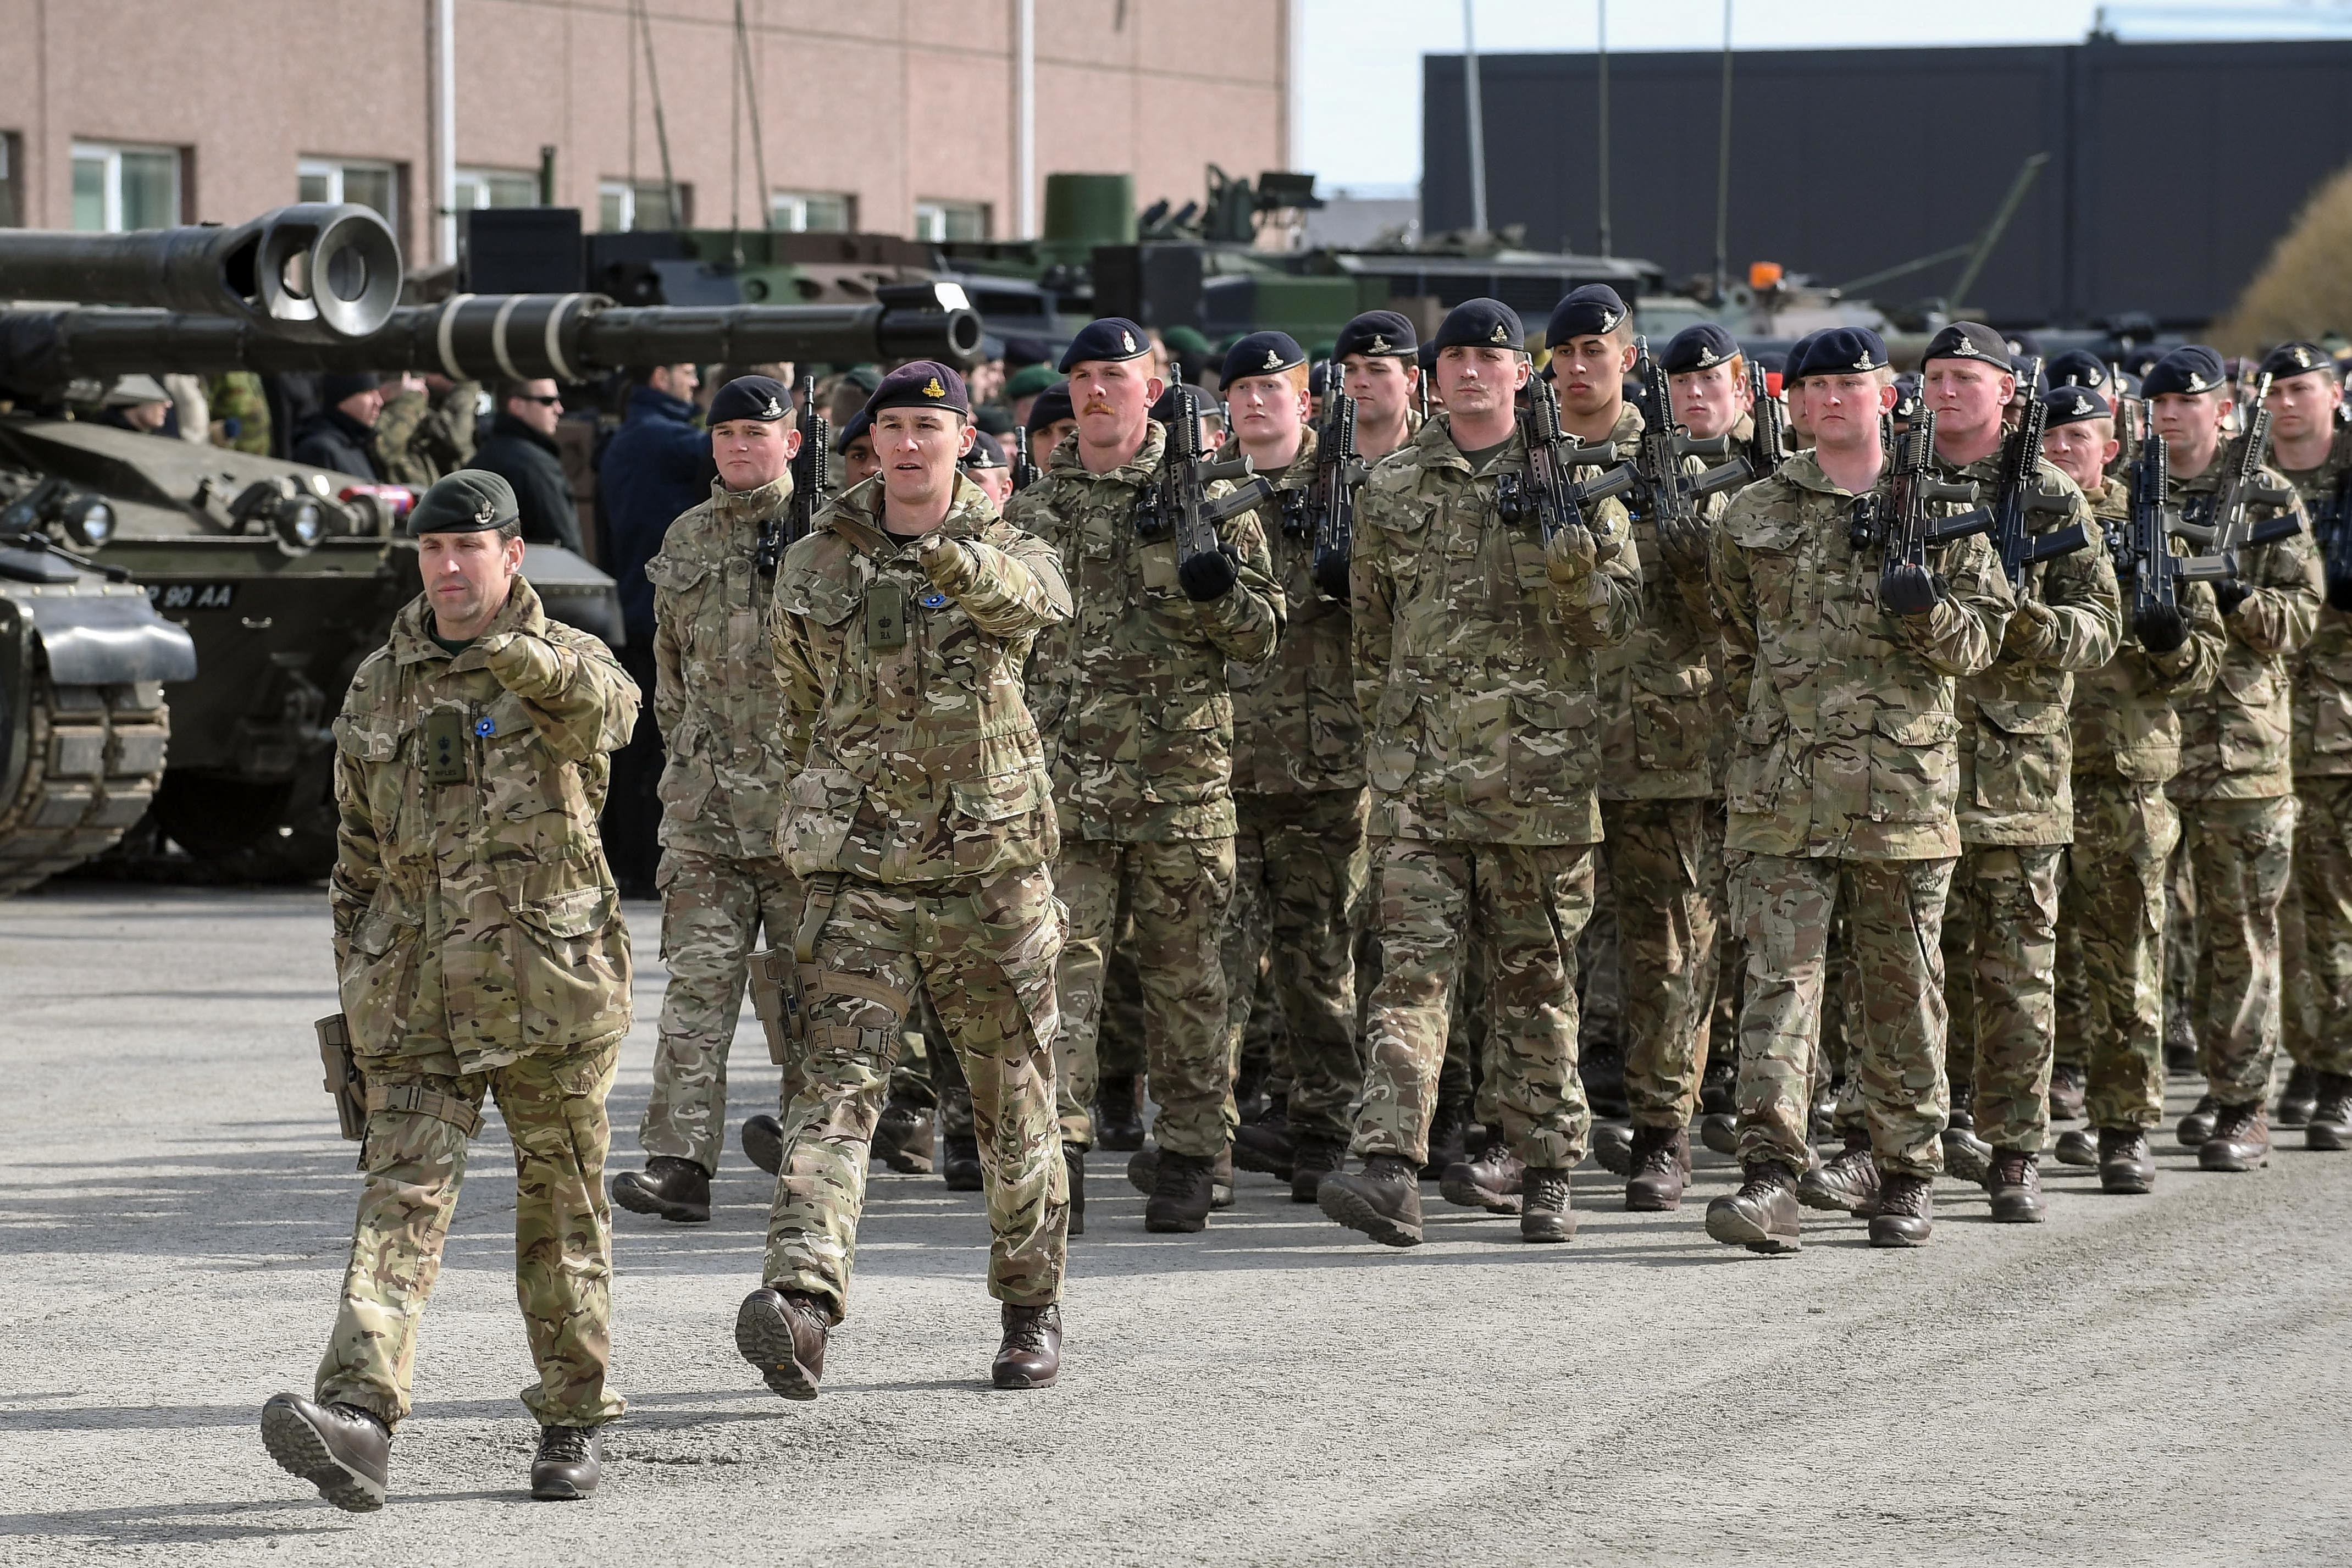 British Army soldiers on parade. Credit: PA